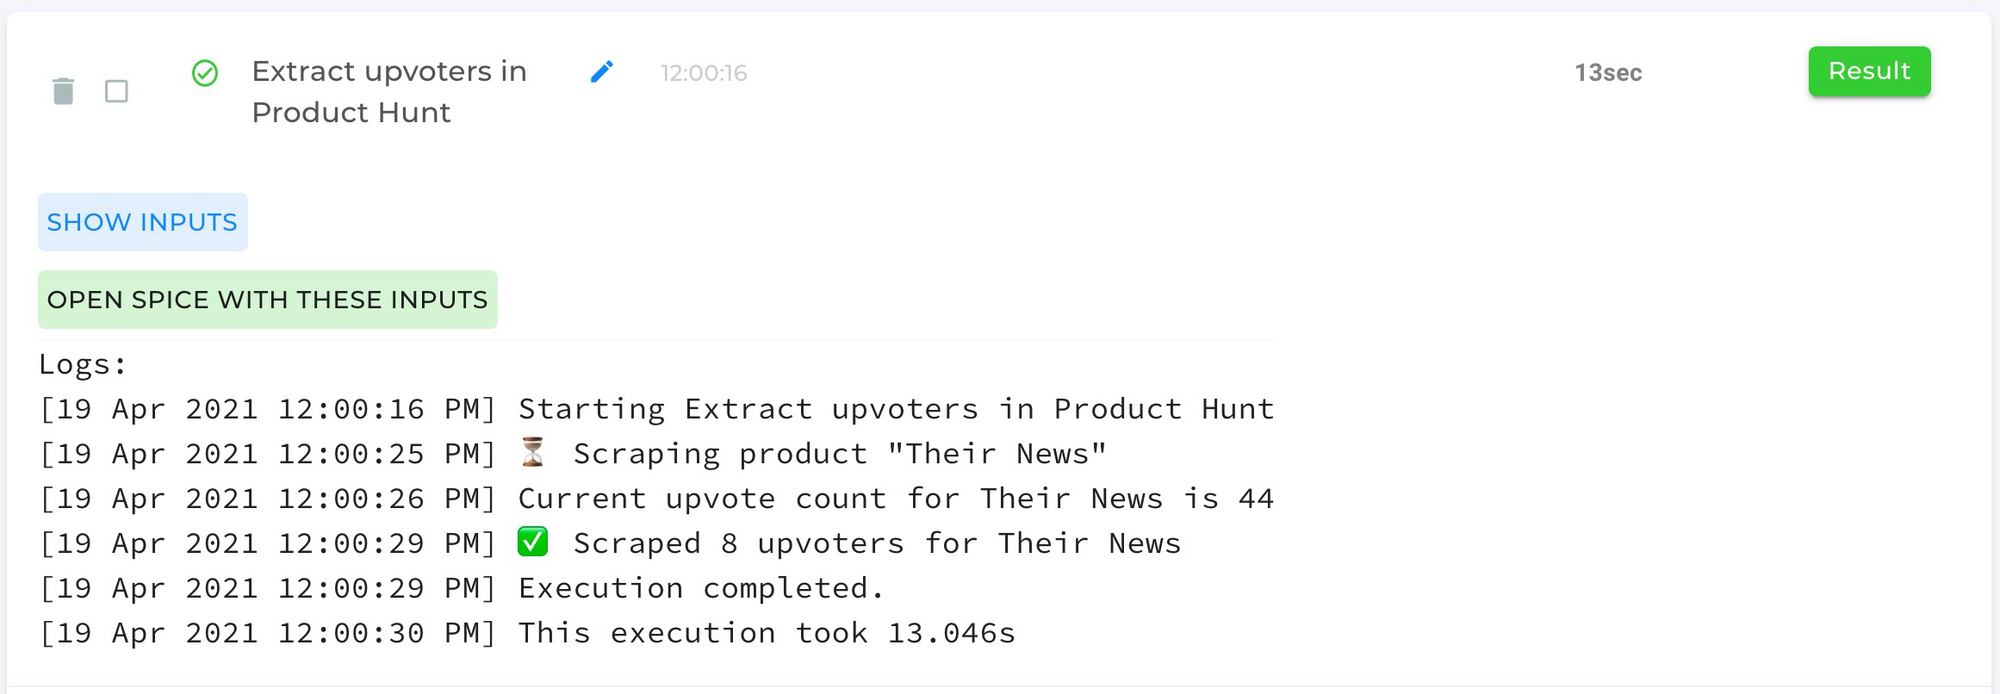 Extract-upvoters-in-Product-Hunt-Results